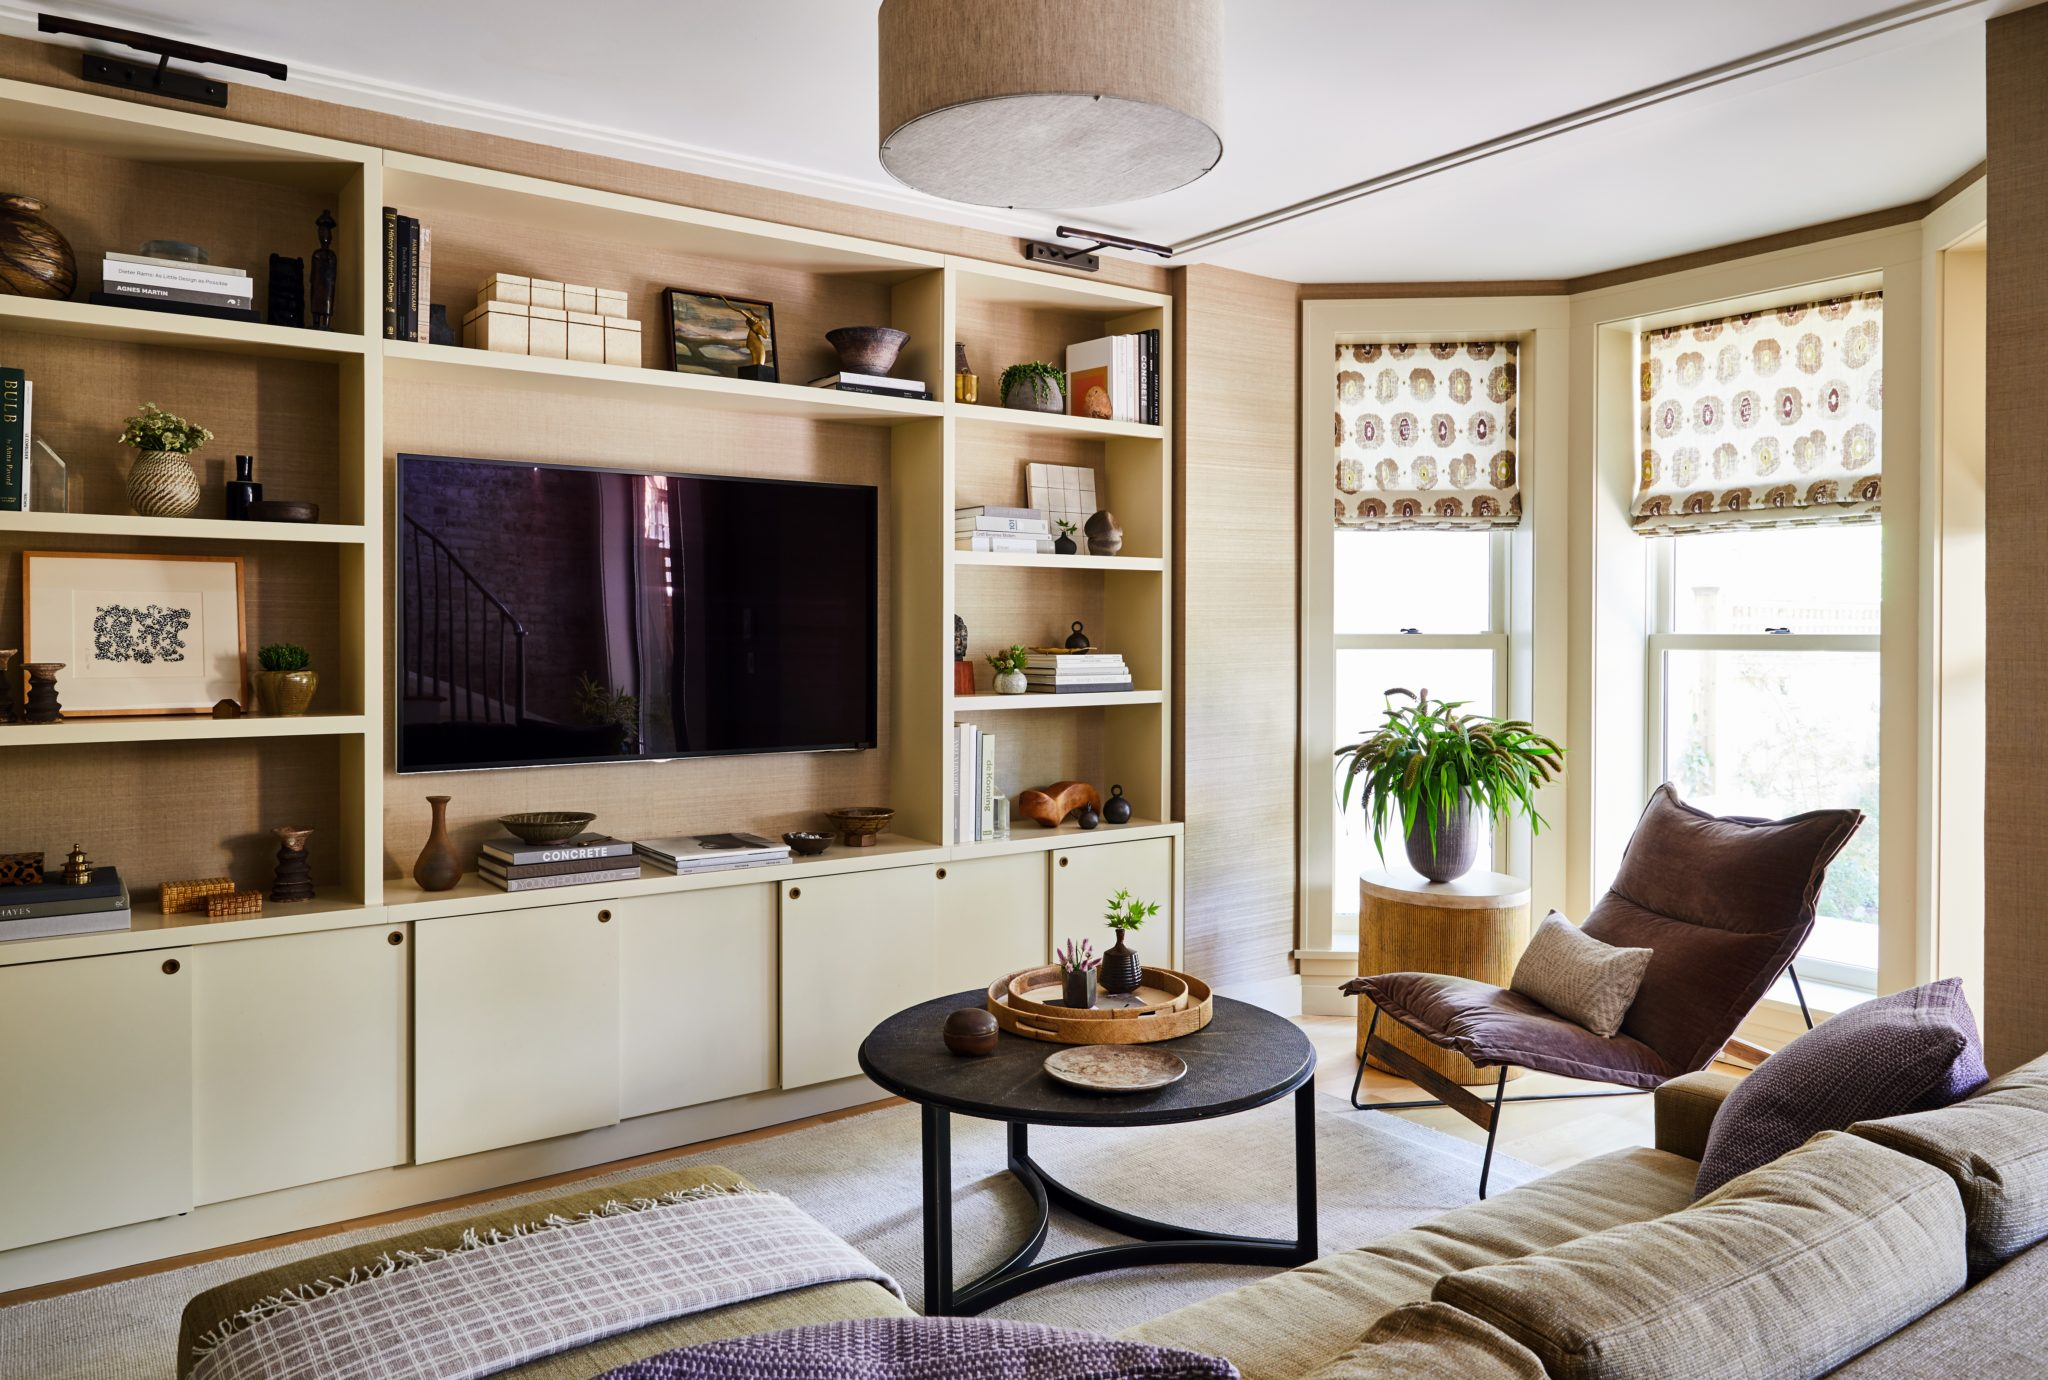 A grasscloth wallcovering from Sonia's Place in a natural hue covers the walls and is visible through the built-in media cabinet, custom created by NR Wood Design. Enger selected Claremont fabric for the window shades, Holly Hunt fabric for the custom sectional, and Claremont velvet for the Environment lounge chair. A custom wool flat weave runs underneath the furnishings, matching the color of the custom linen drum shade. The bookcase lighting is from A. Rudin; the occasional table is from Gabby, and the faux shagreen coffee table is from Dwell.